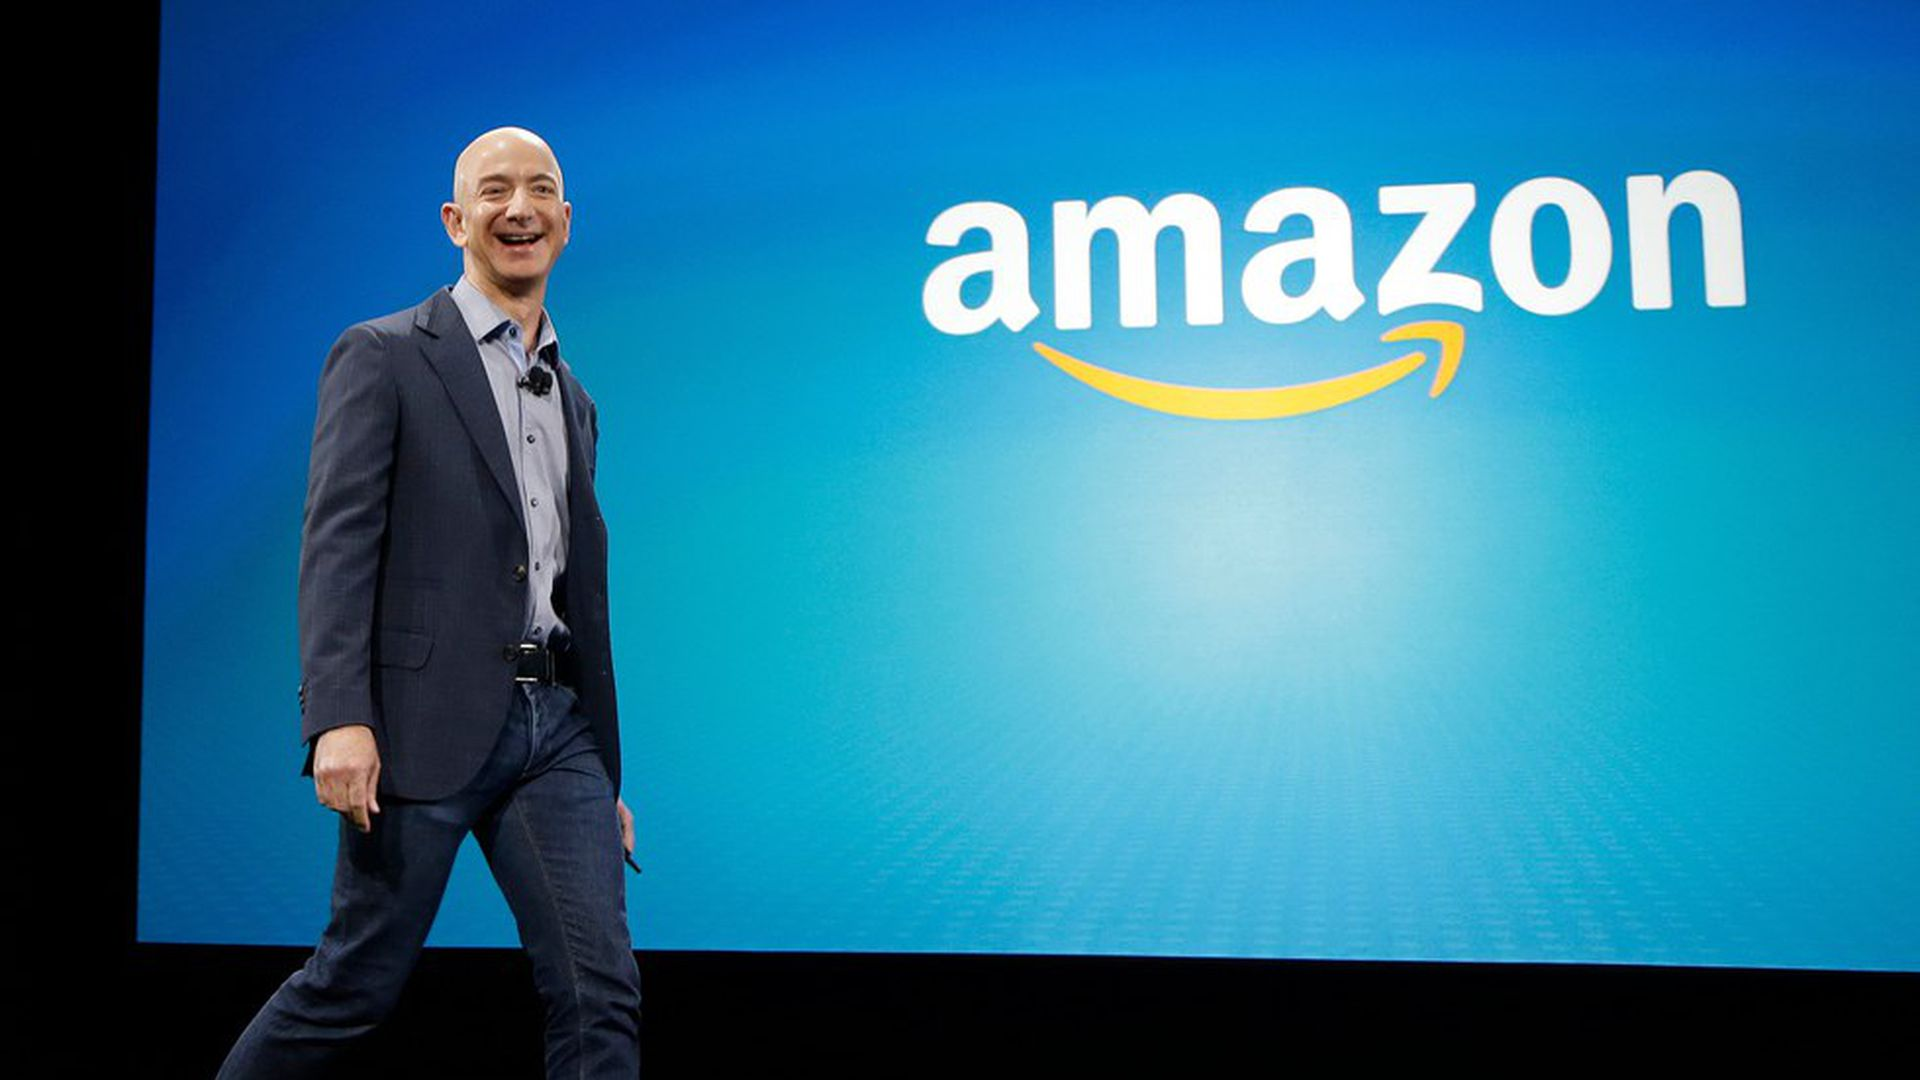 Amazon to partner with Cerner on health care data - Axios